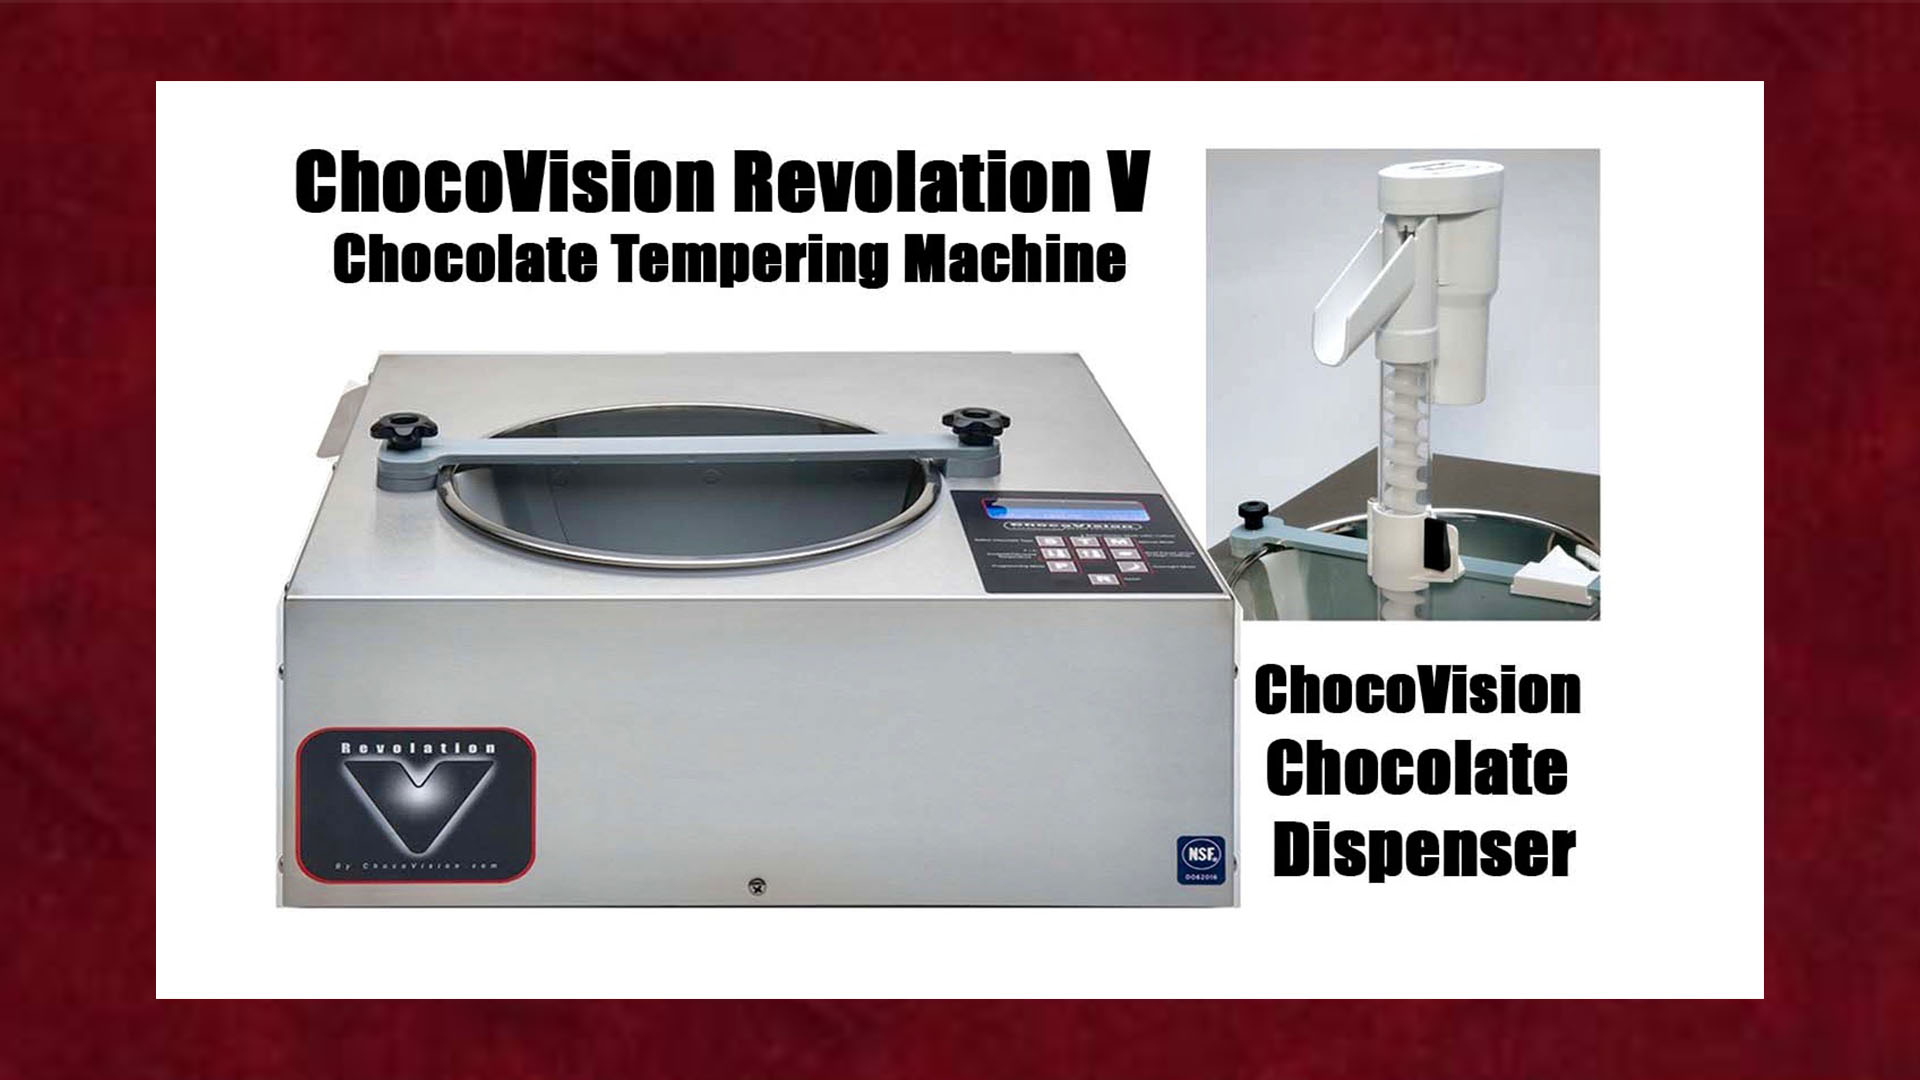 Chocovision Revolation V Tempering Machine & Dispenser